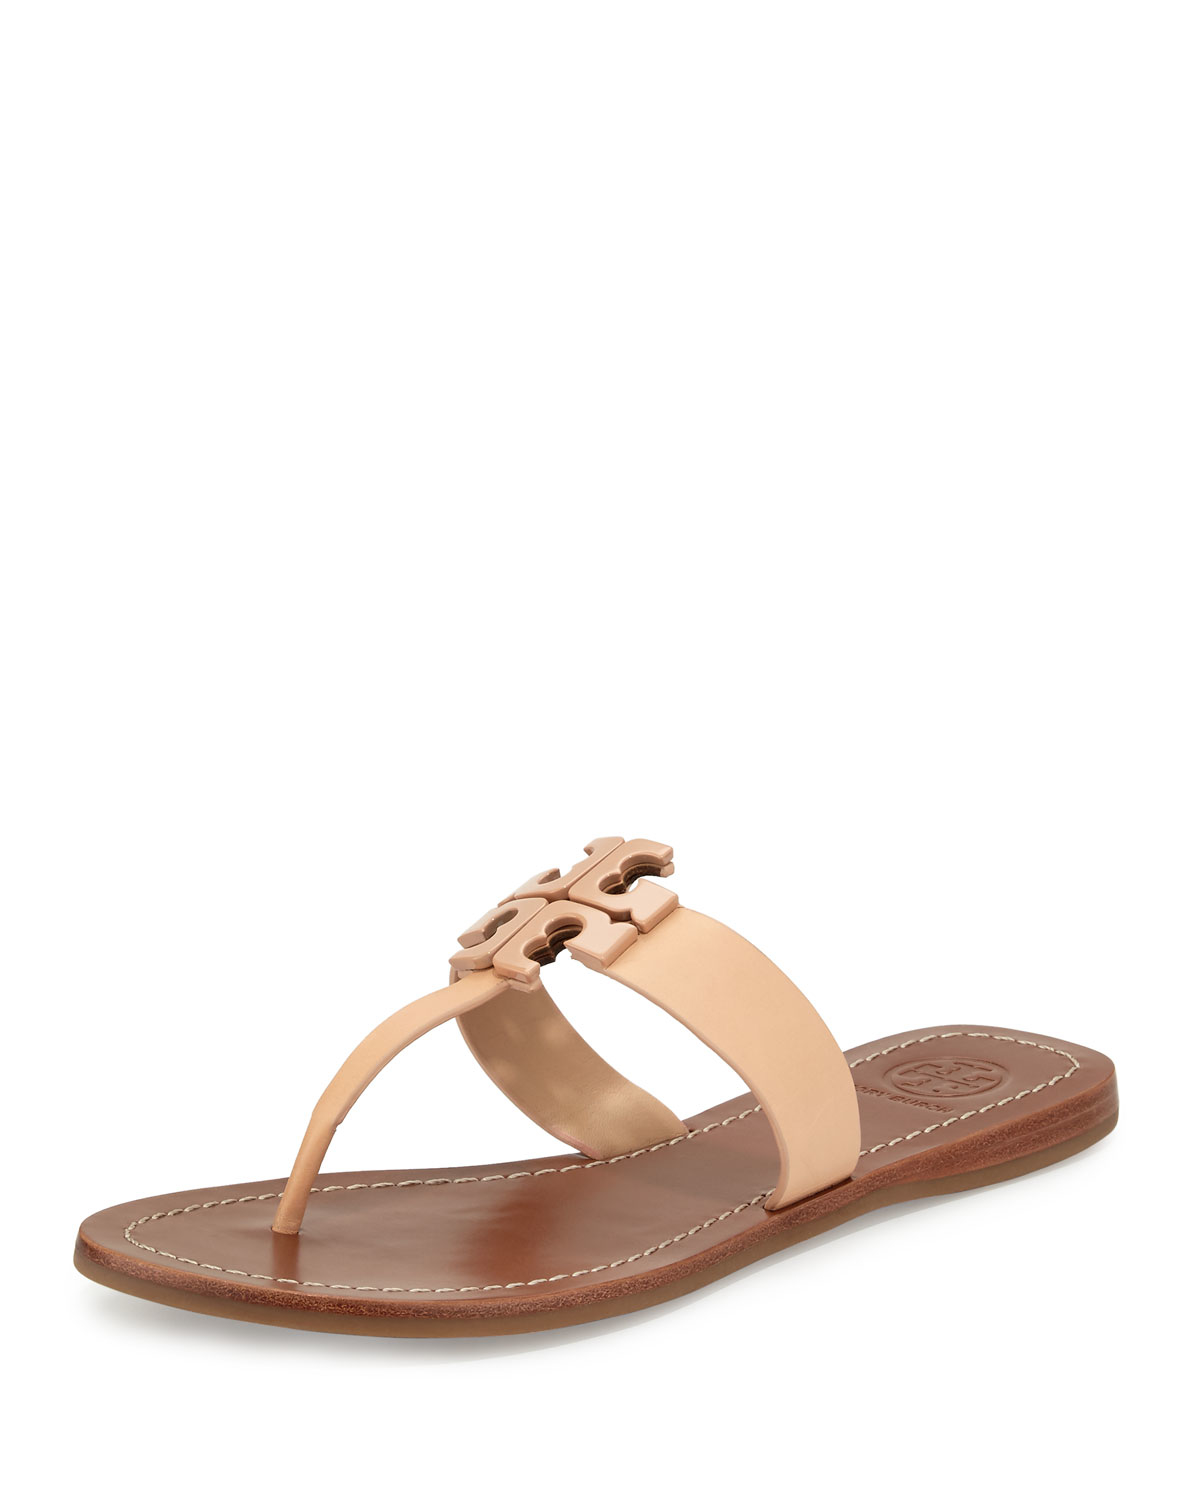 948a6078641 Lyst - Tory Burch Moore 2 Leather Thong Sandals in Natural